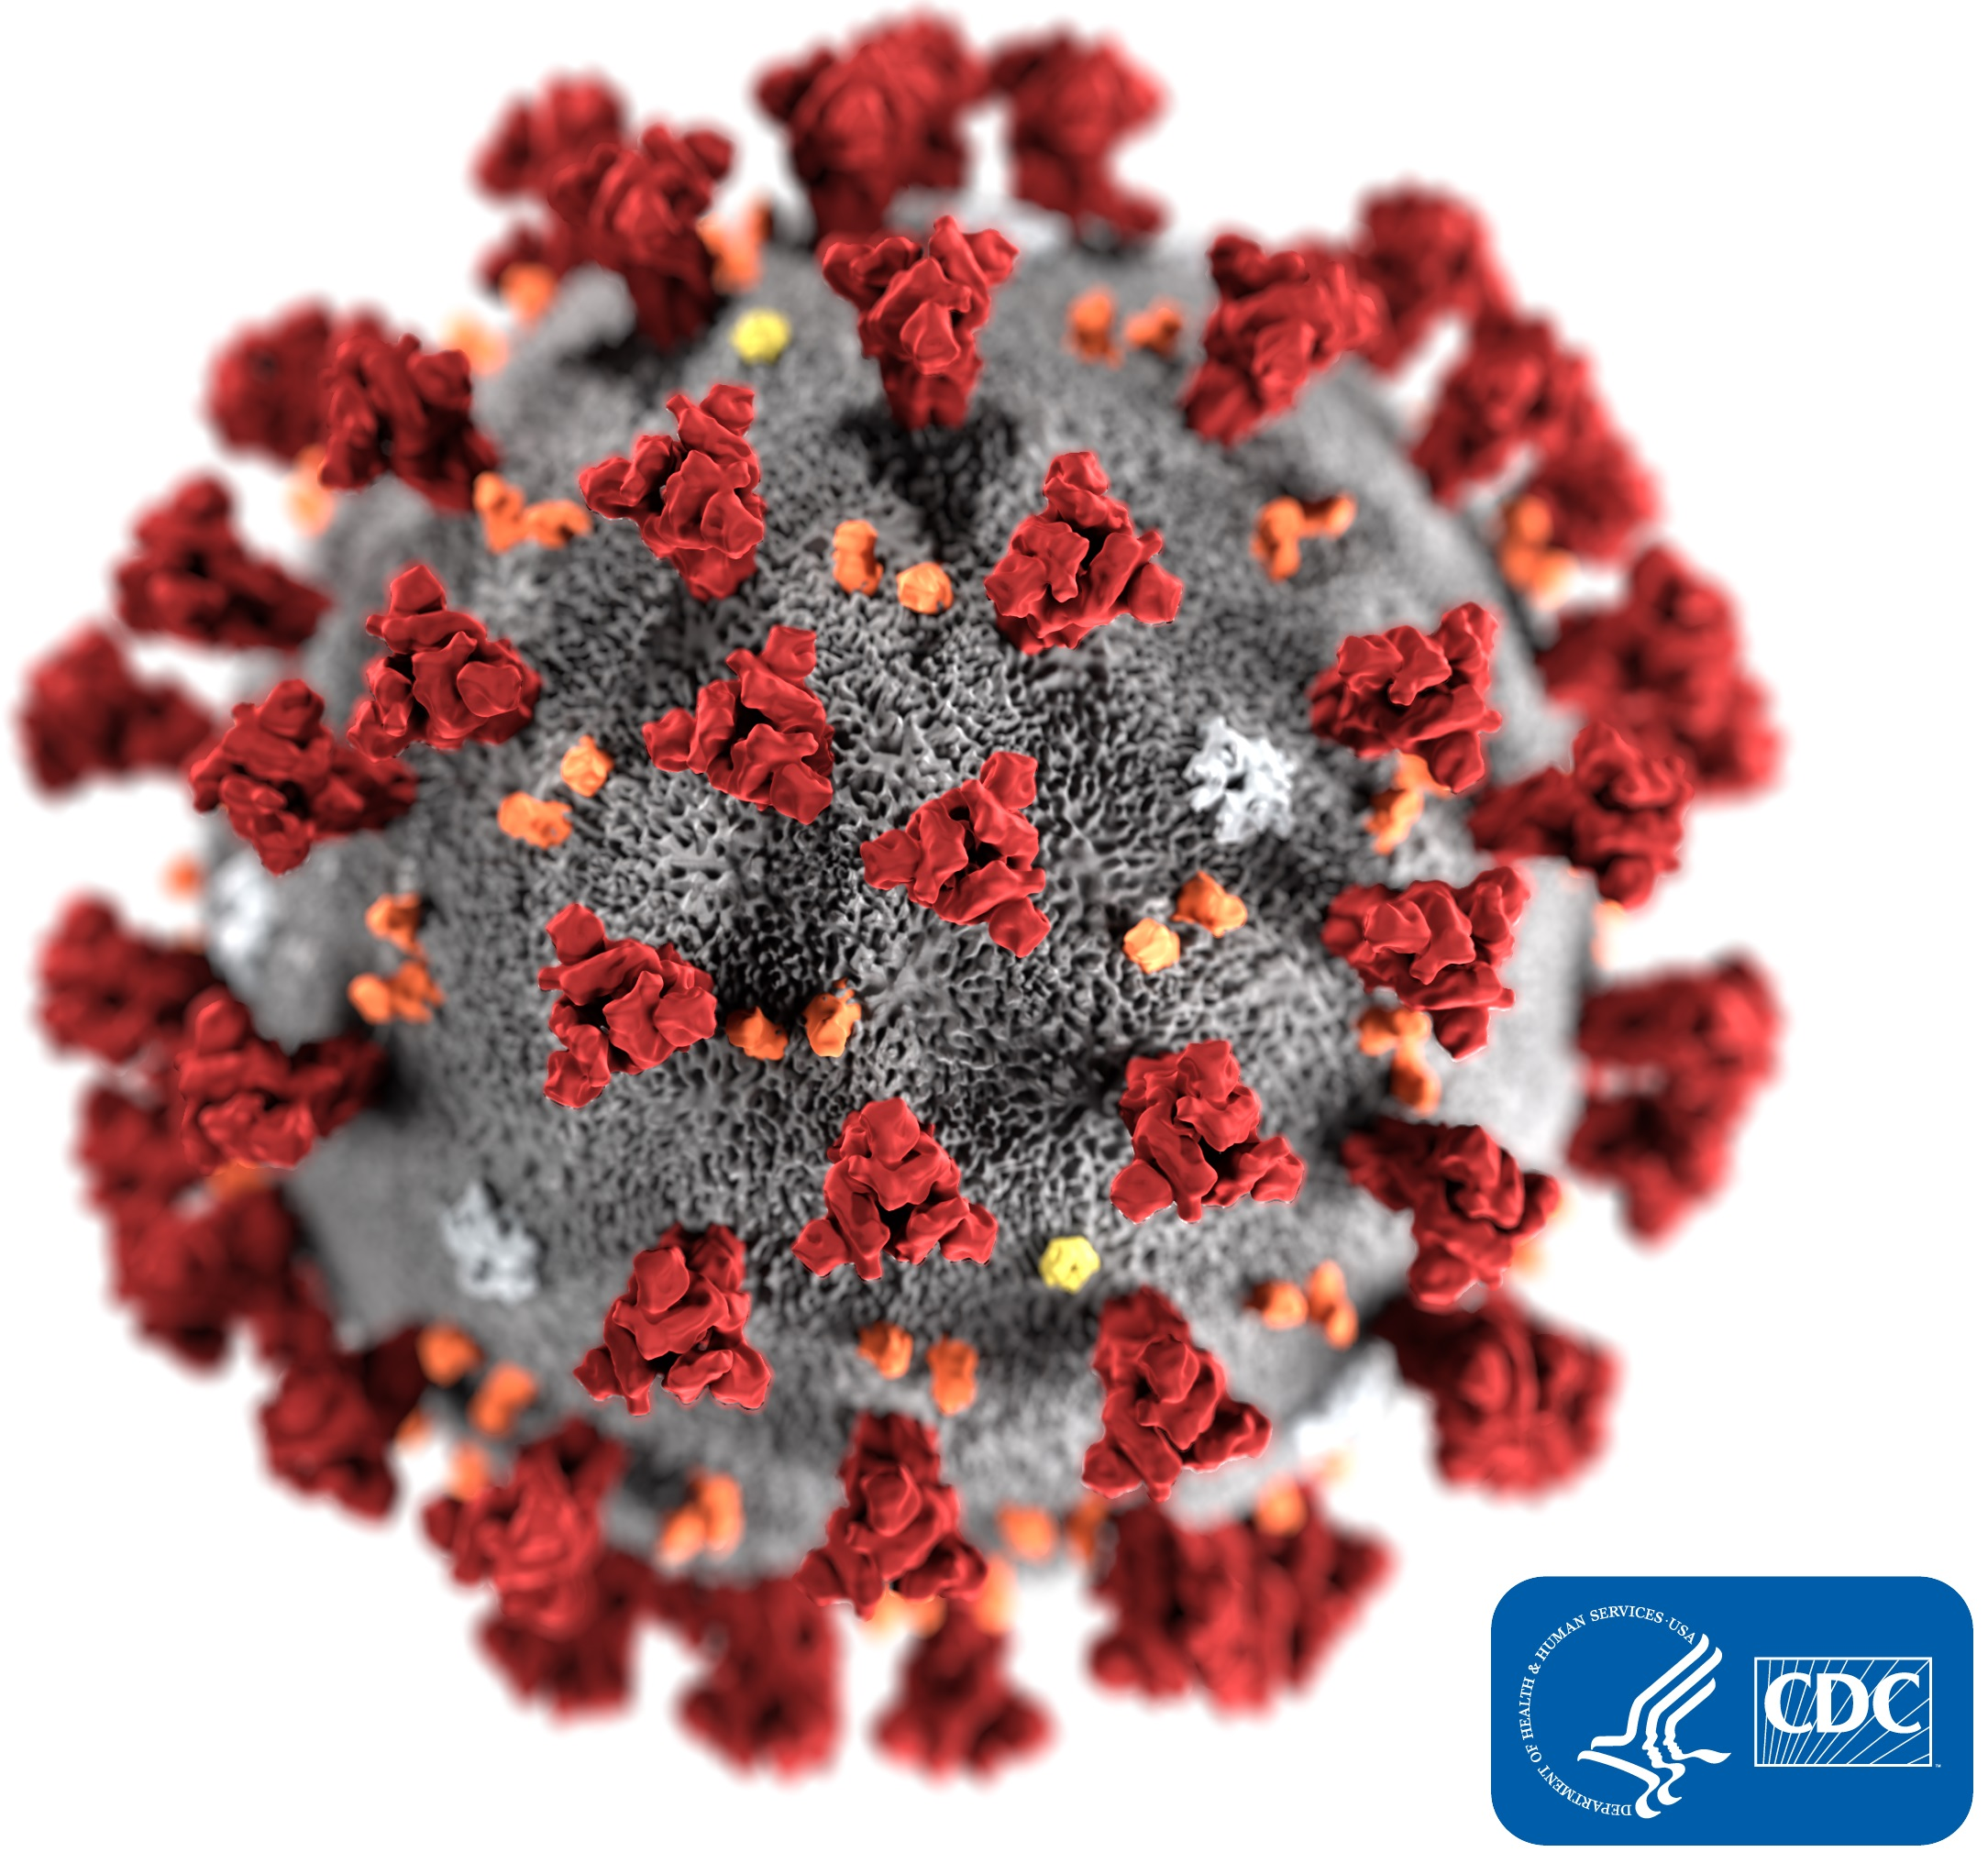 Colorful digital representation of a 2019 novel coronavirus molecule Opens in new window